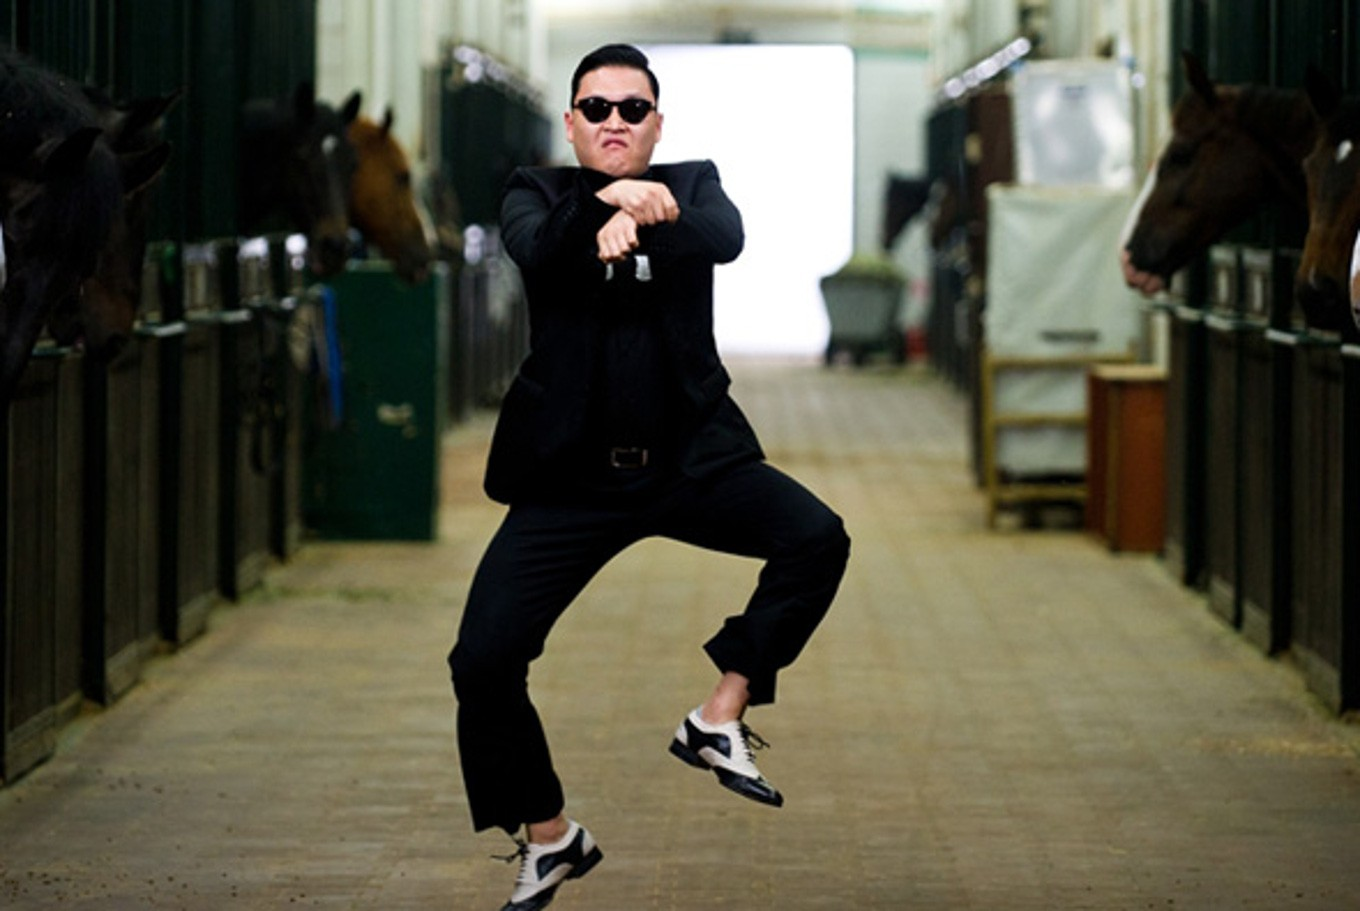 A still from Psy's famous music video Gangnam Style.